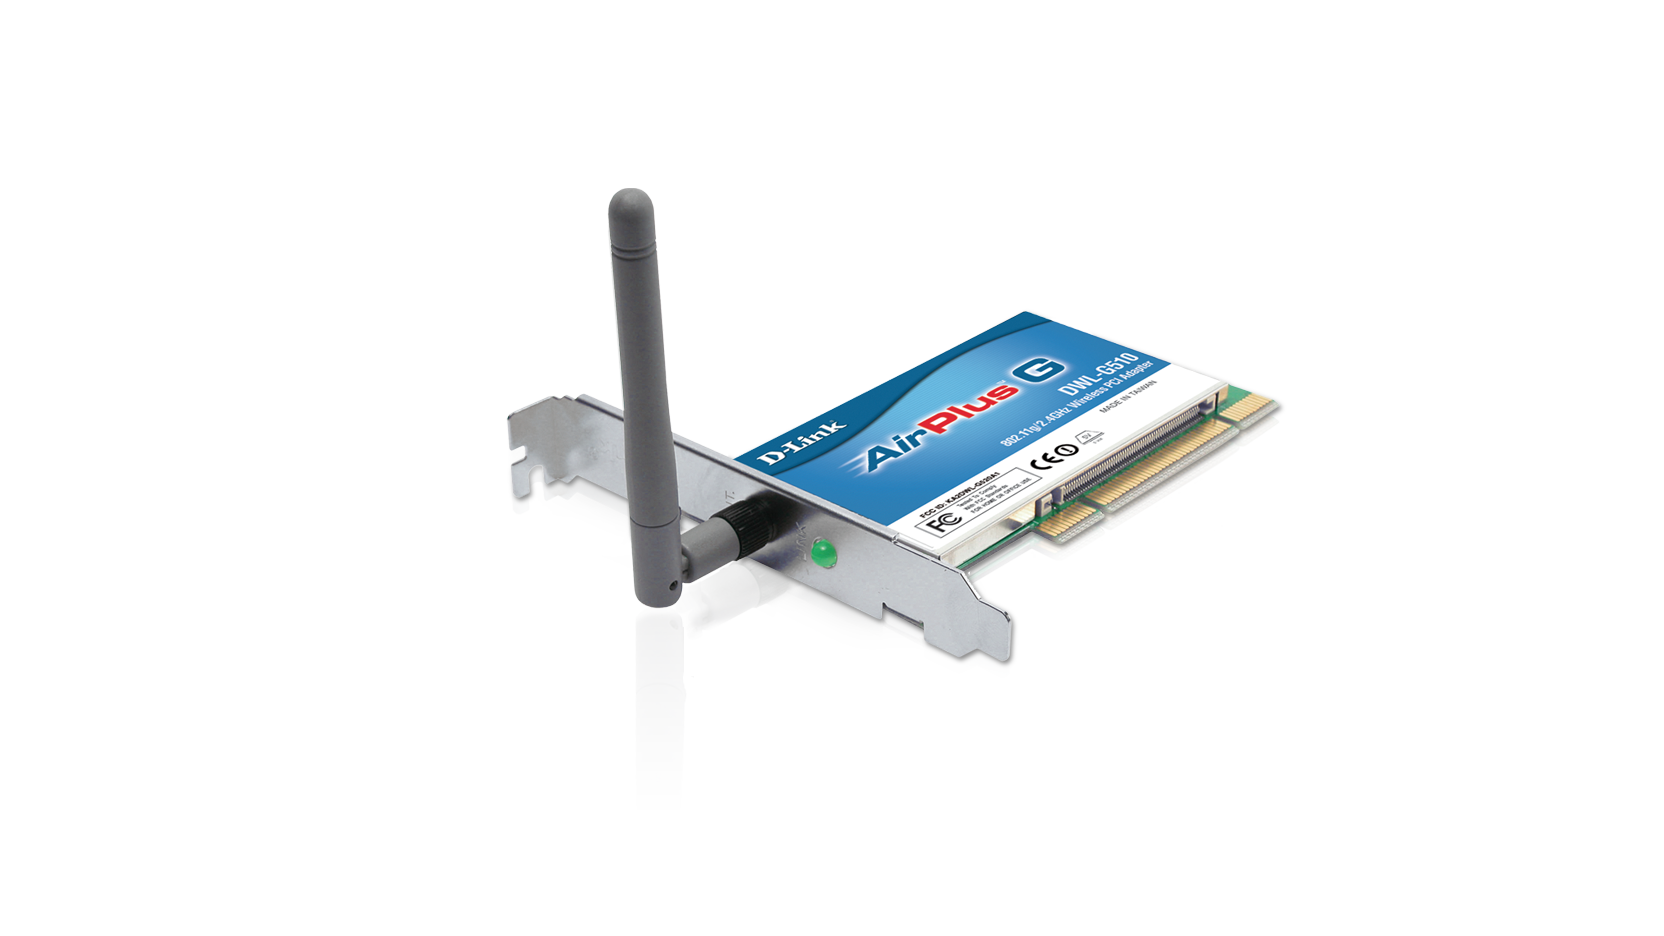 NEW DRIVERS: 54MBPS 802.11 G WIRELESS LAN PCI CARD